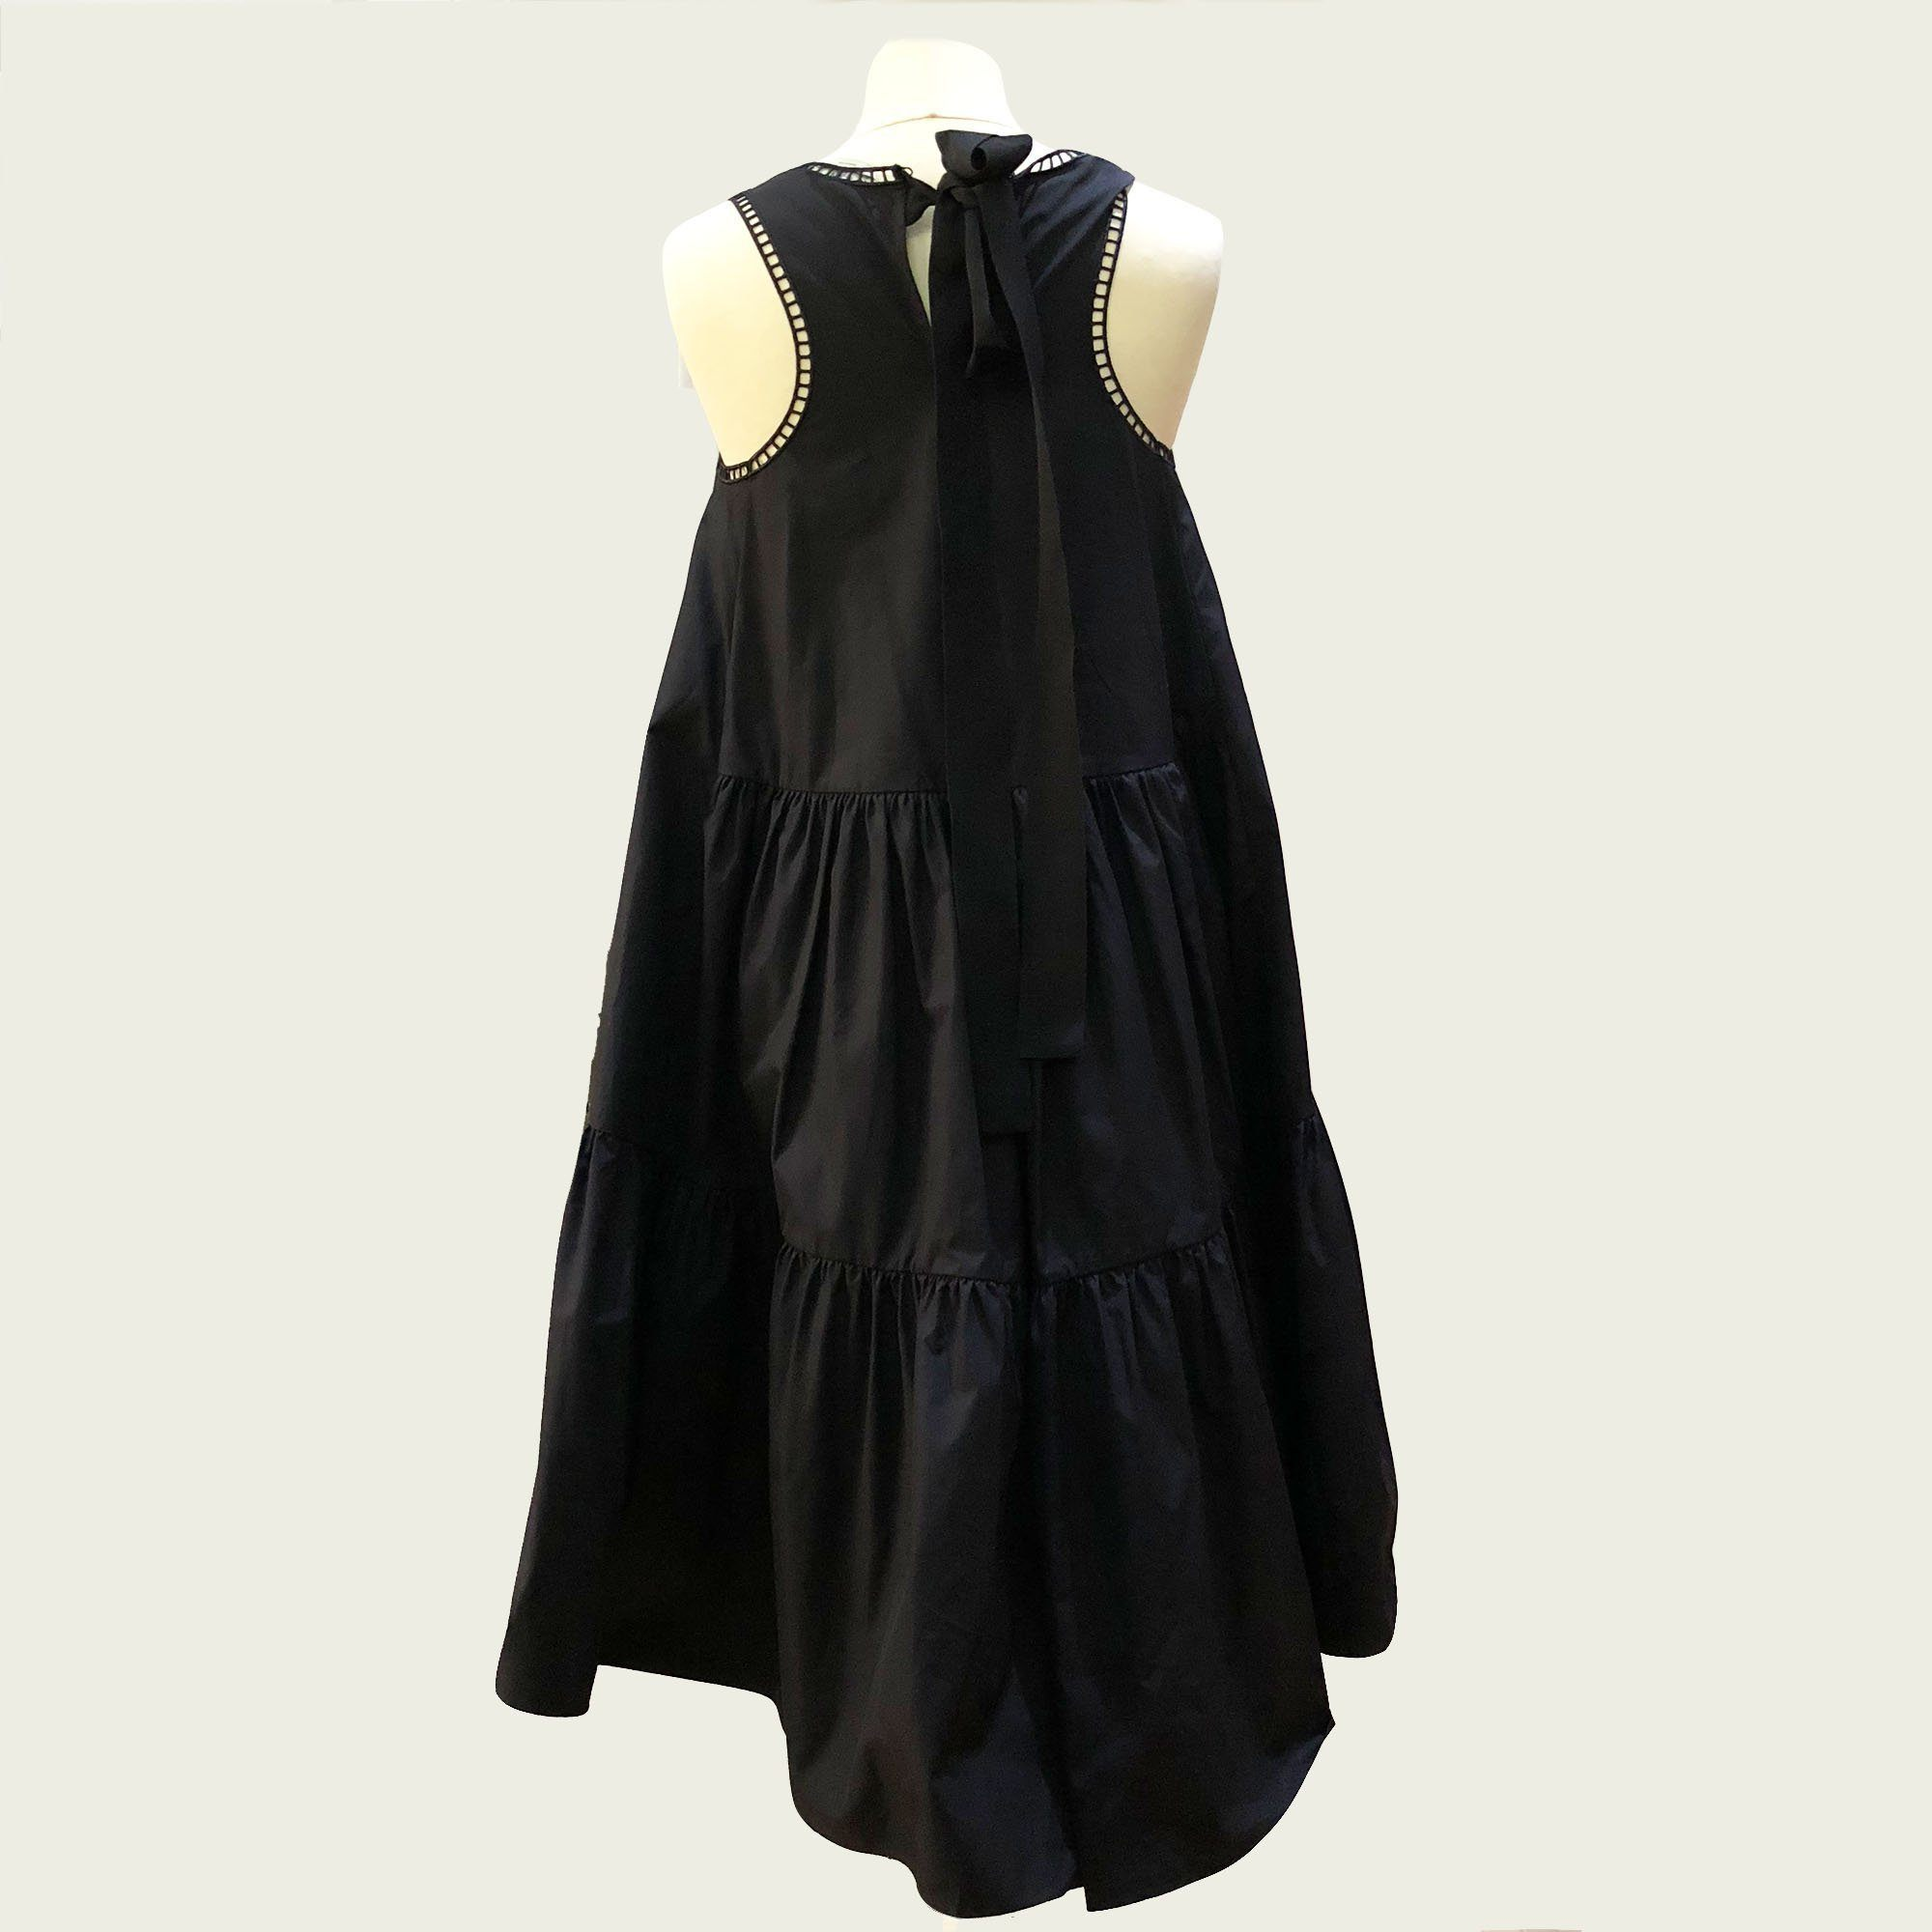 Fendi Appliquéd Cotton-taffeta Midi Dress